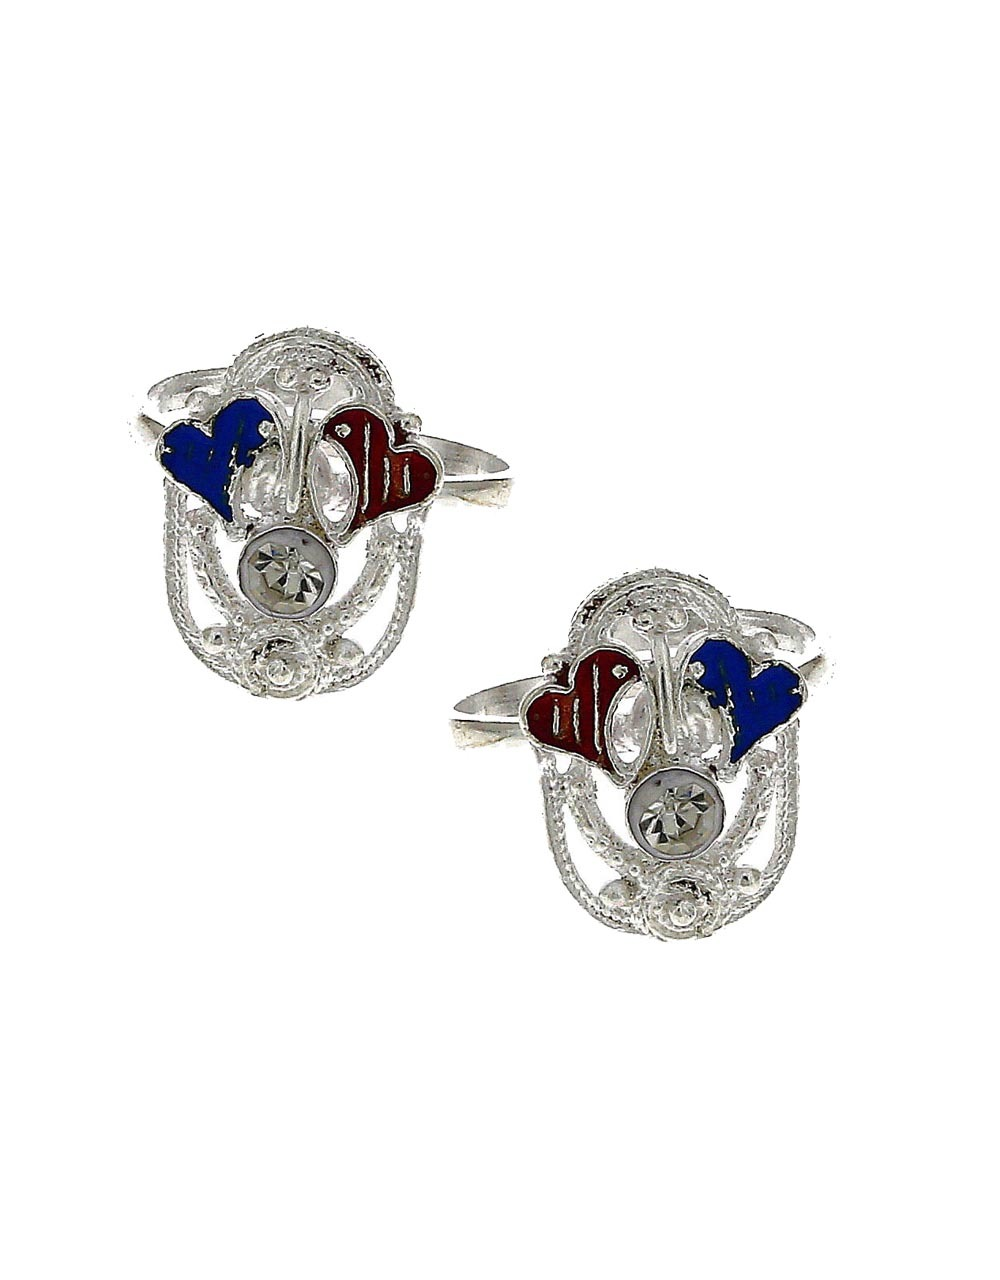 Attractive red and blue stone silver finish bichhudi for woman